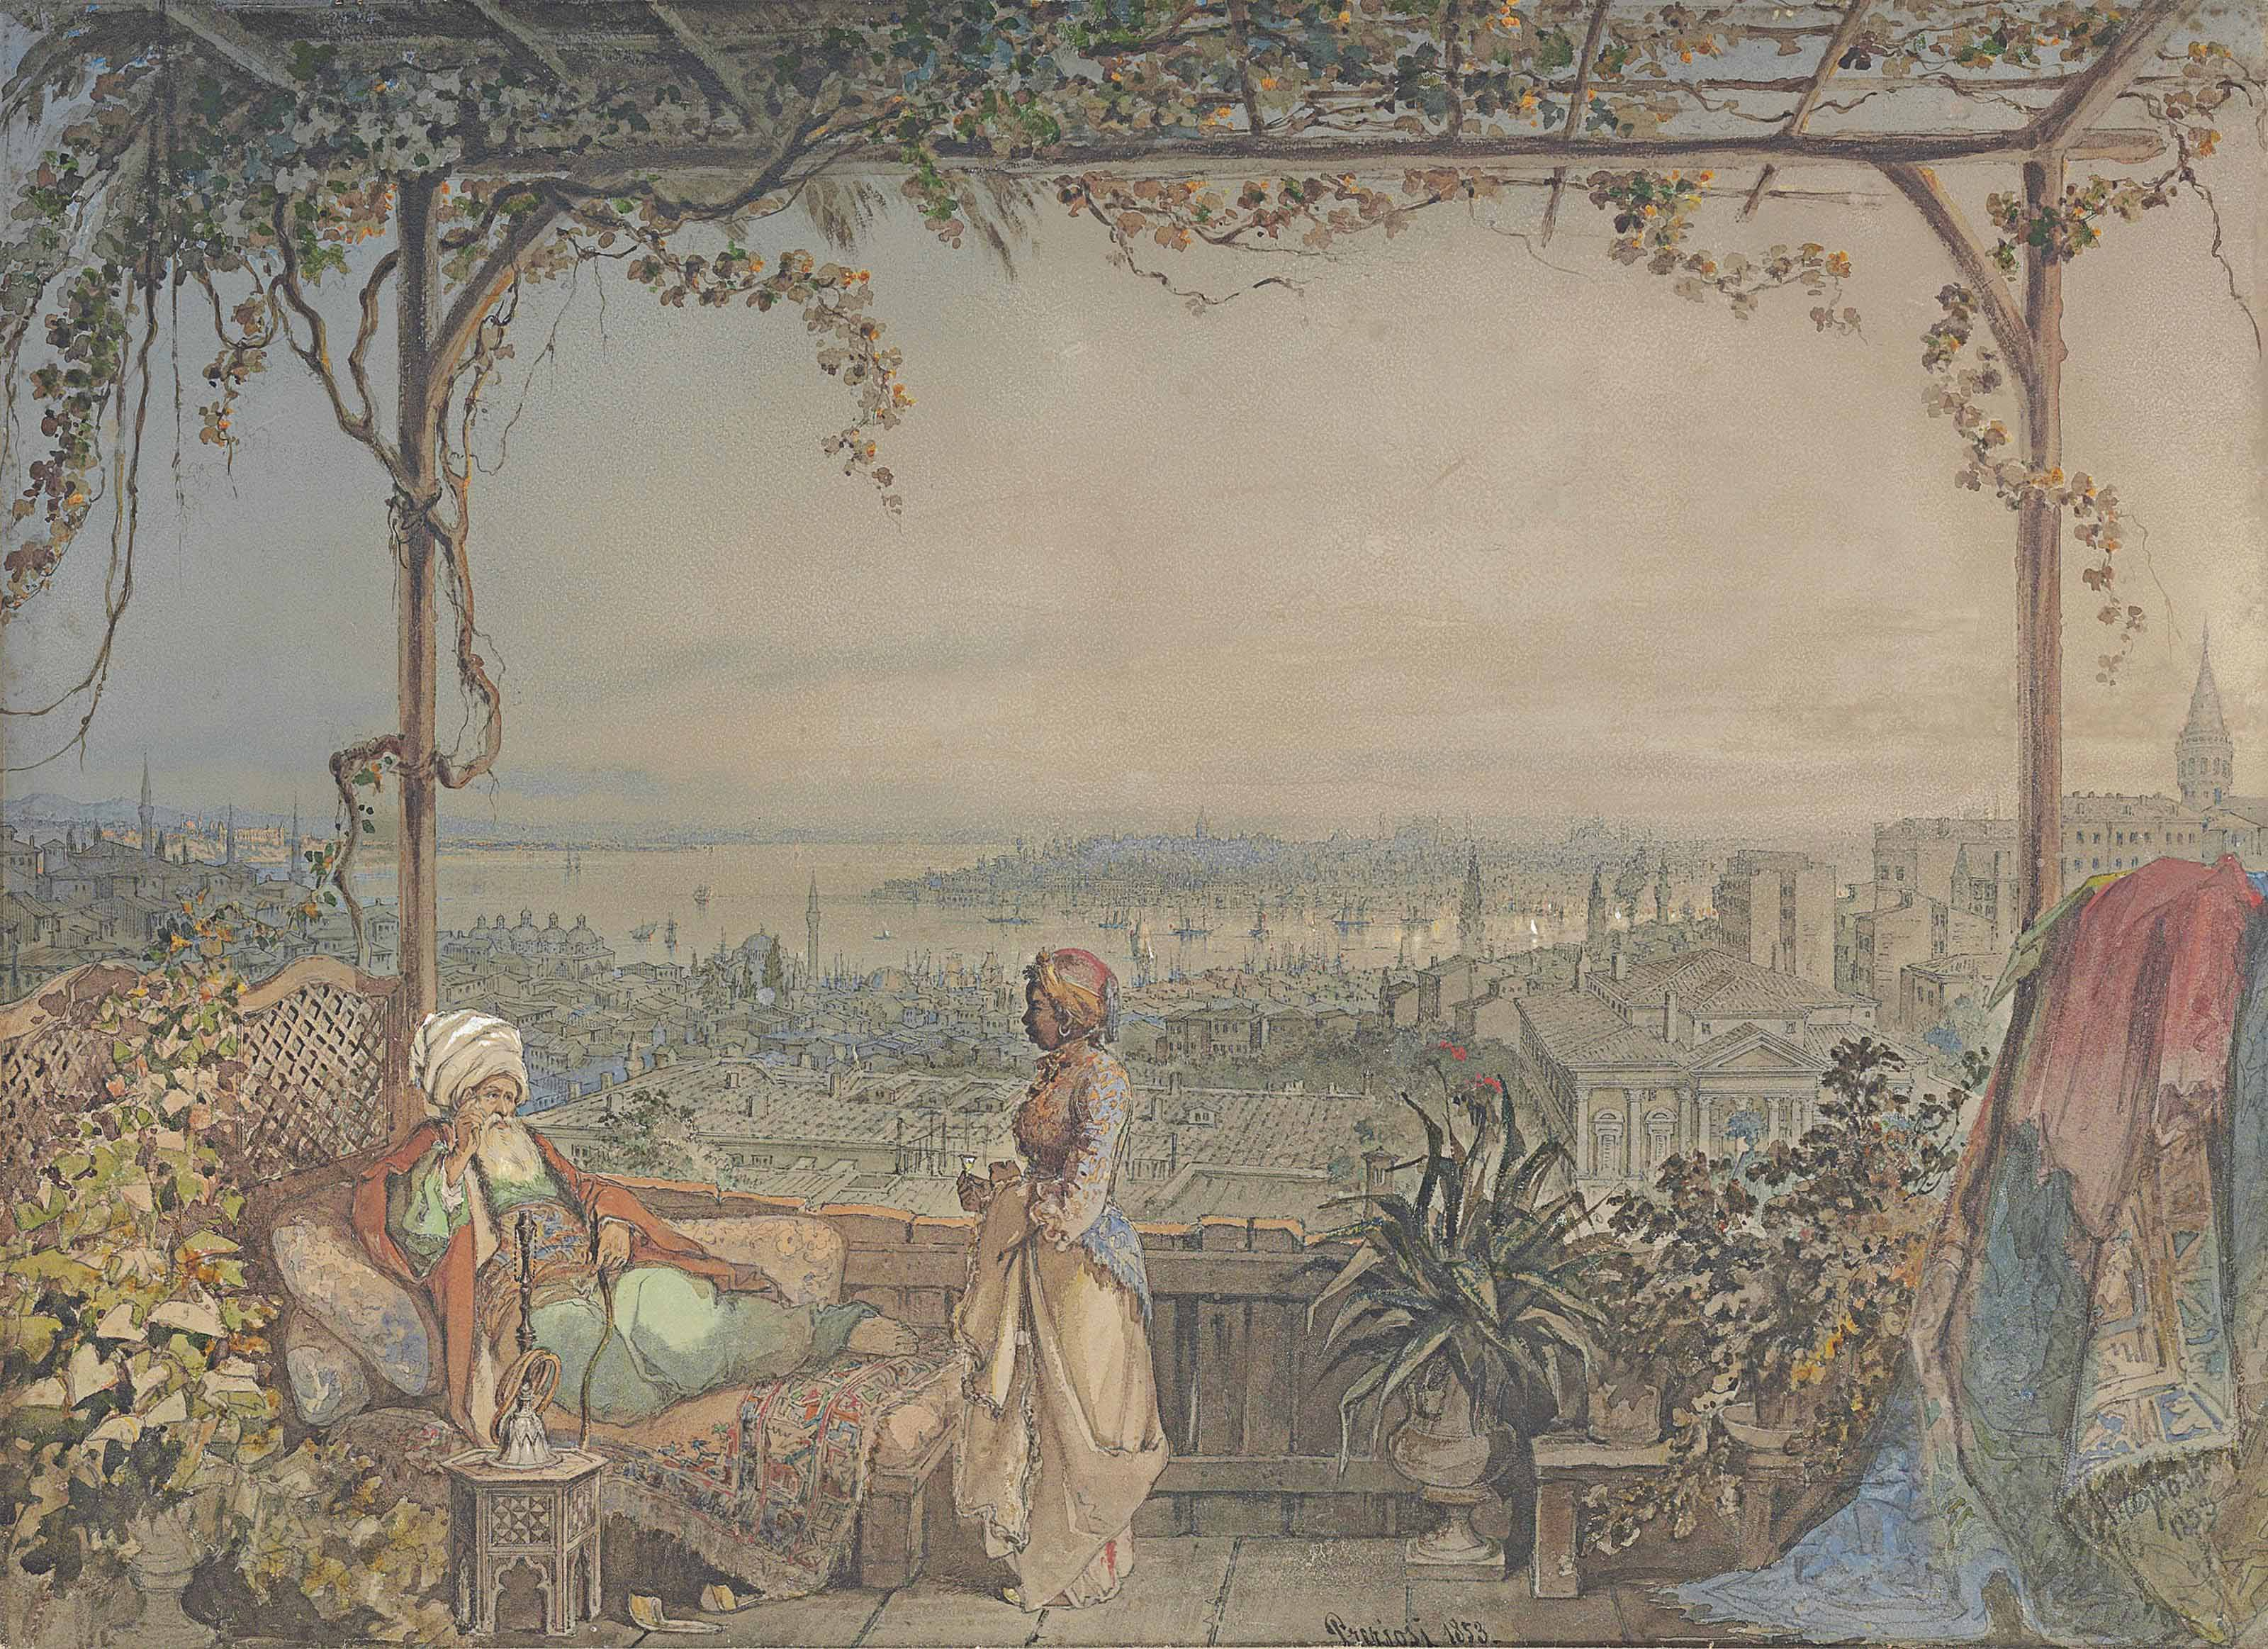 Pasha and maid on a balcony in Pera overlooking Constantinople